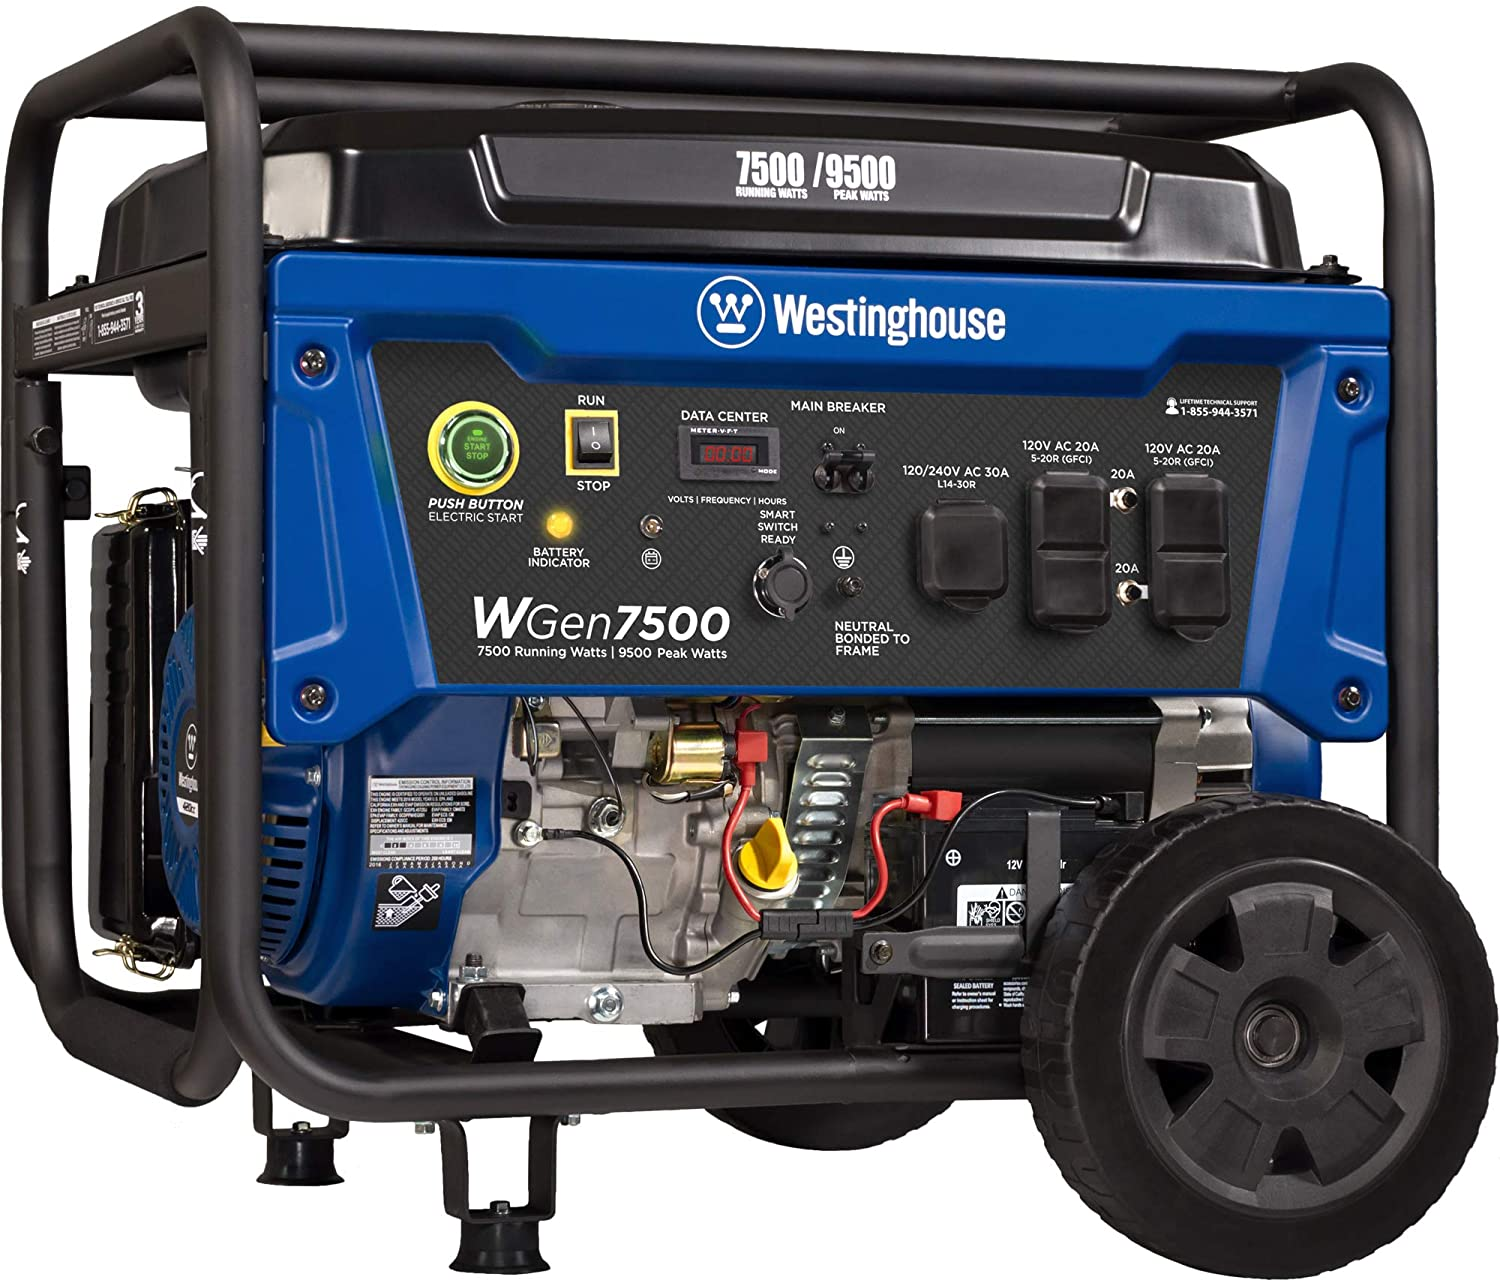 Westinghouse WGen7500 Portable Generator with Remote Electric Start - 7500 Rated Watts & 9500 Peak Watts - Gas Powered - CARB Compliant - Transfer Switch Ready : Garden & Outdoor